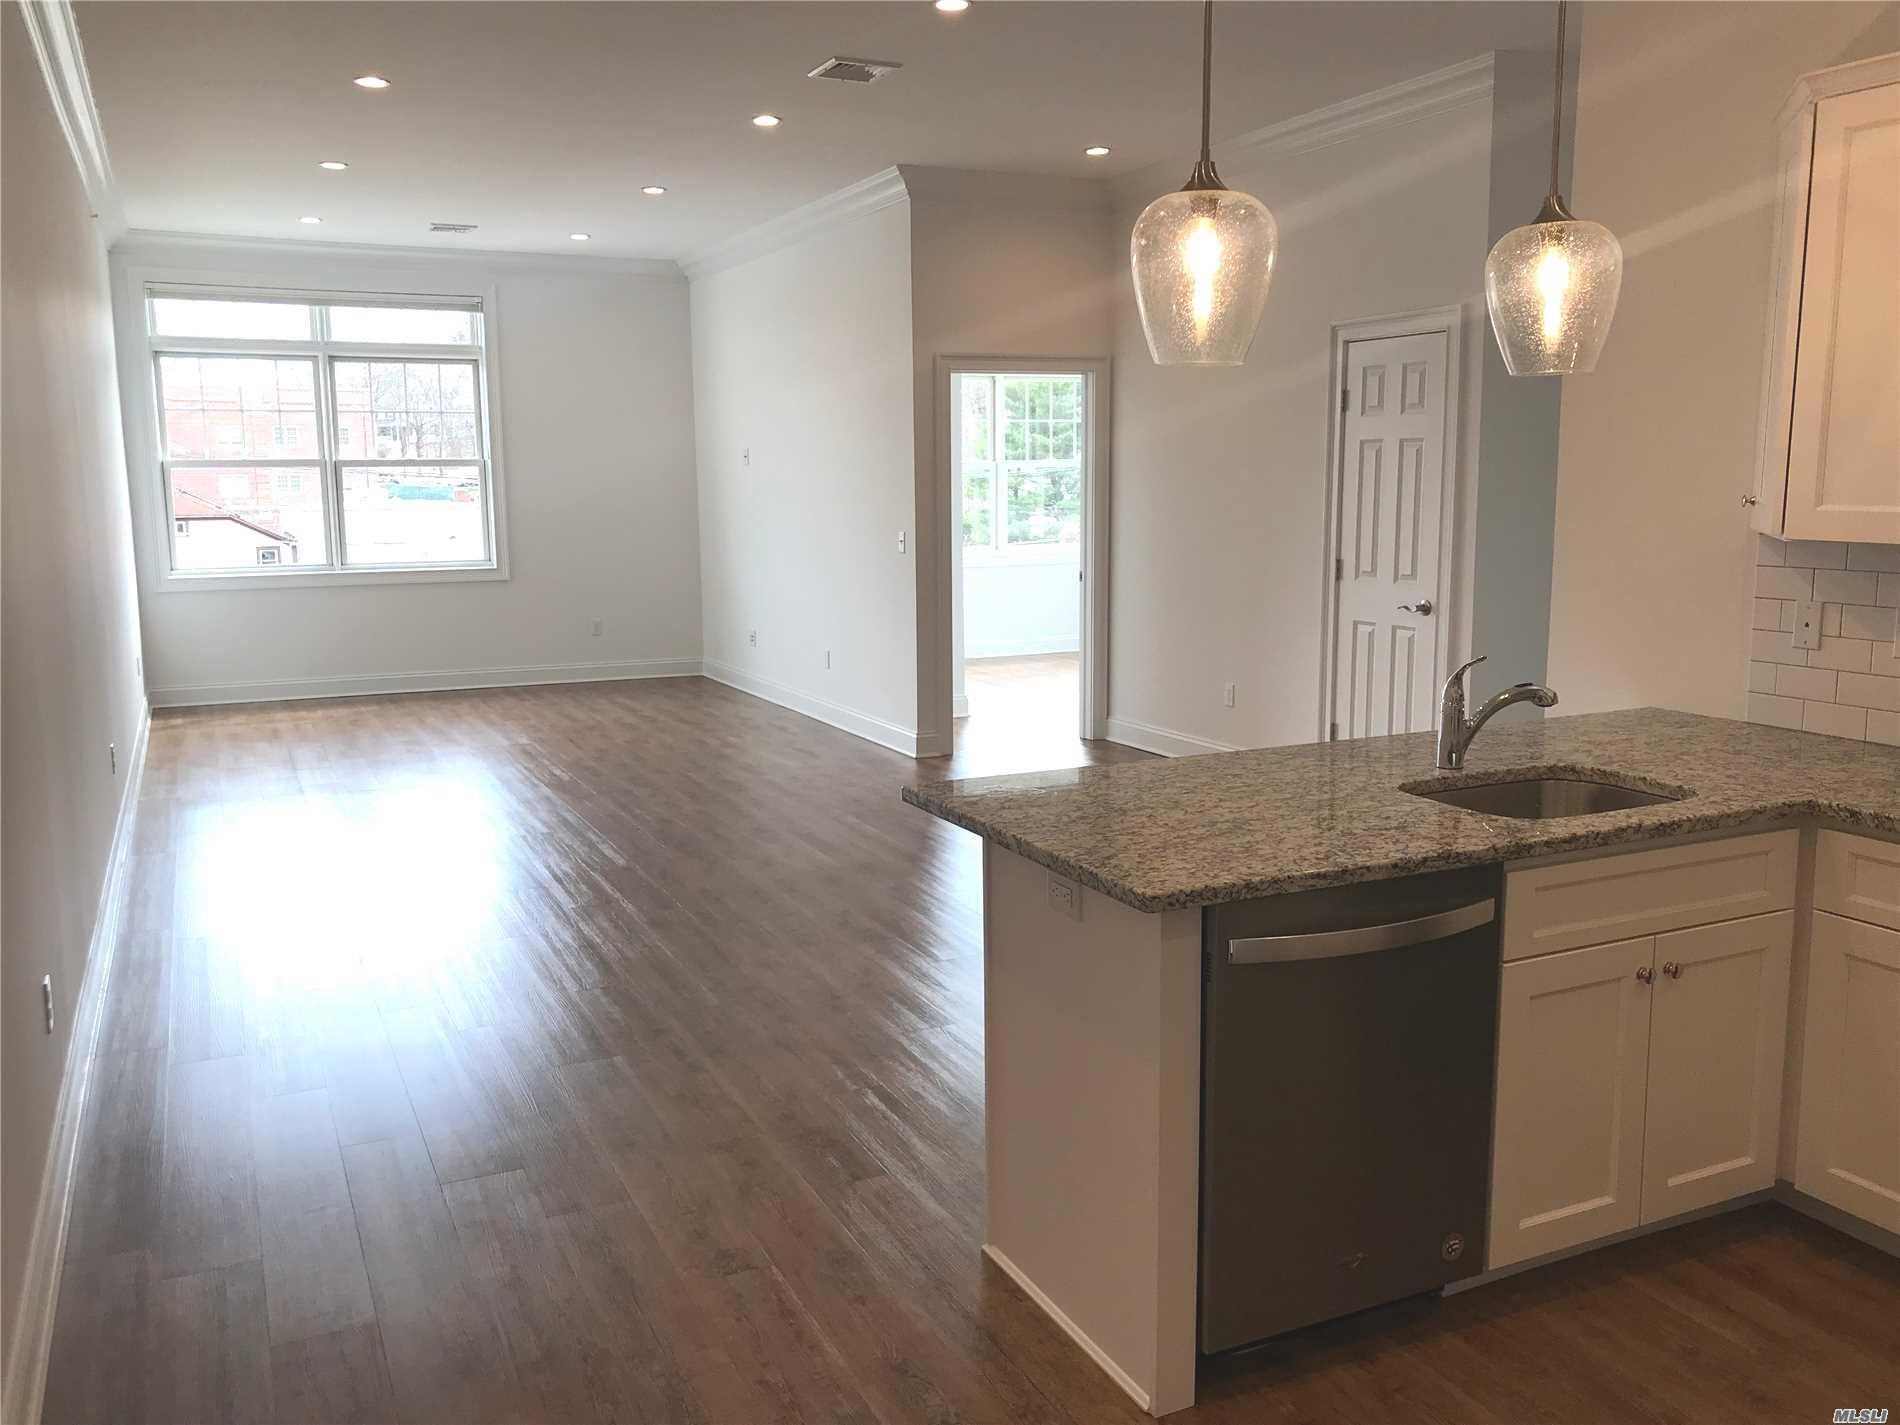 Huntington's Newest Luxury Apartments featuring 10 Ft Ceilings, Granite Counter Tops, Washer/Dryer, Storage Unit , Audio/Visual System In Place To Communicate & Allow Guest In, Super On Site, Private Parking And More. Easy Access W/ Elevator. Pets Welcome (25 Lb. Weight Limit) $500. Pet Fee.